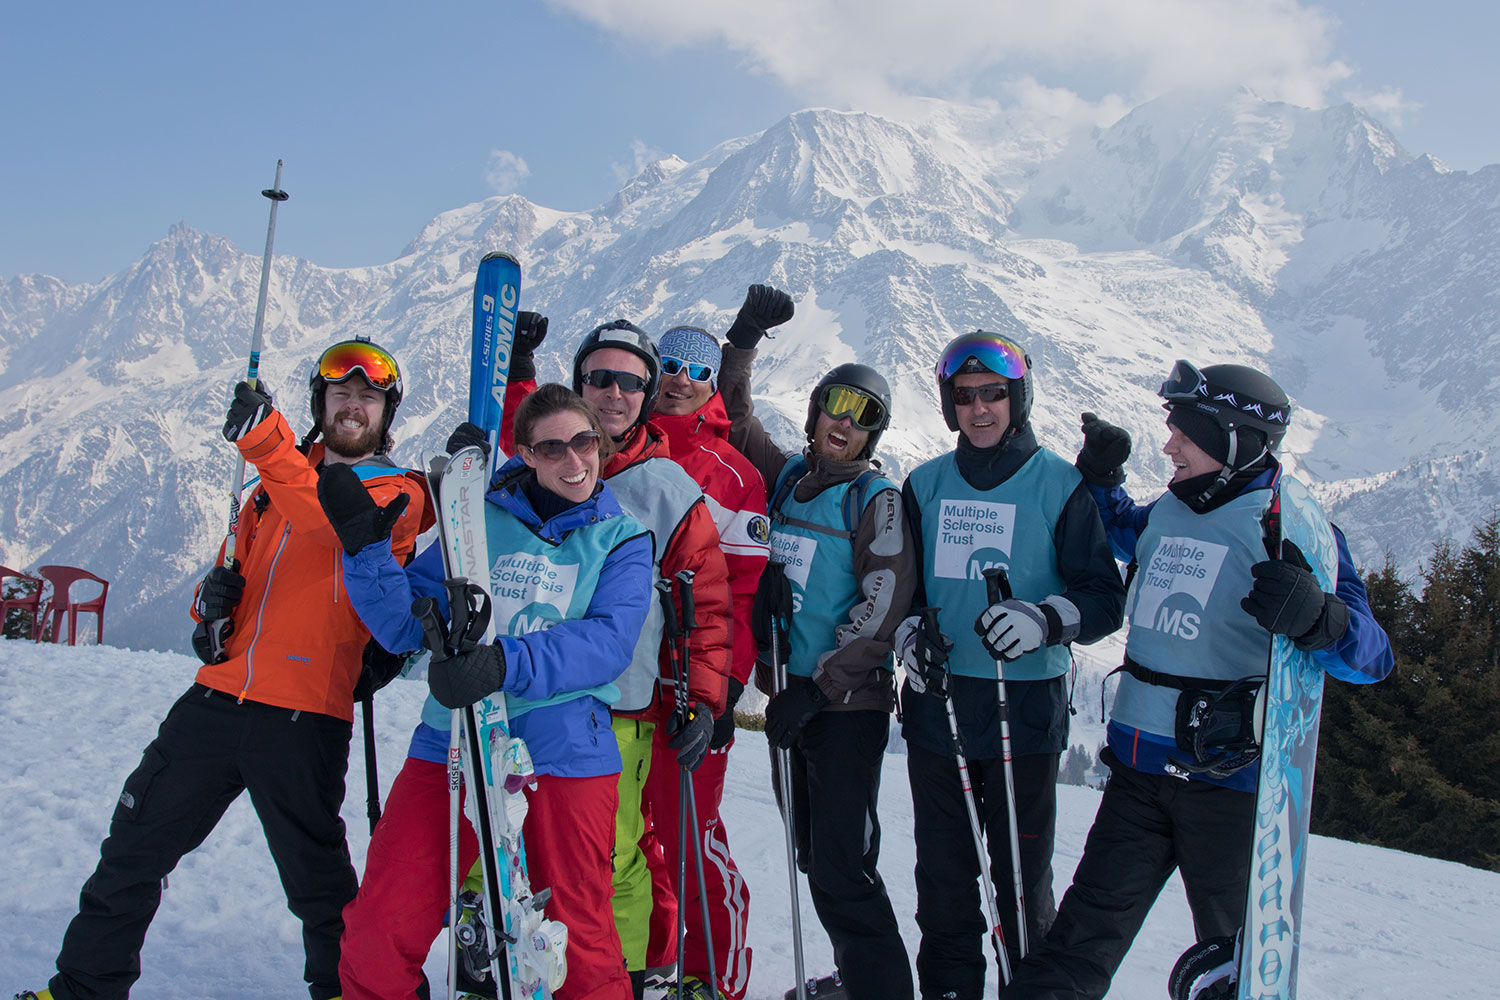 The advance ski group, these guys had clocked up 8 plus runs before lunch.